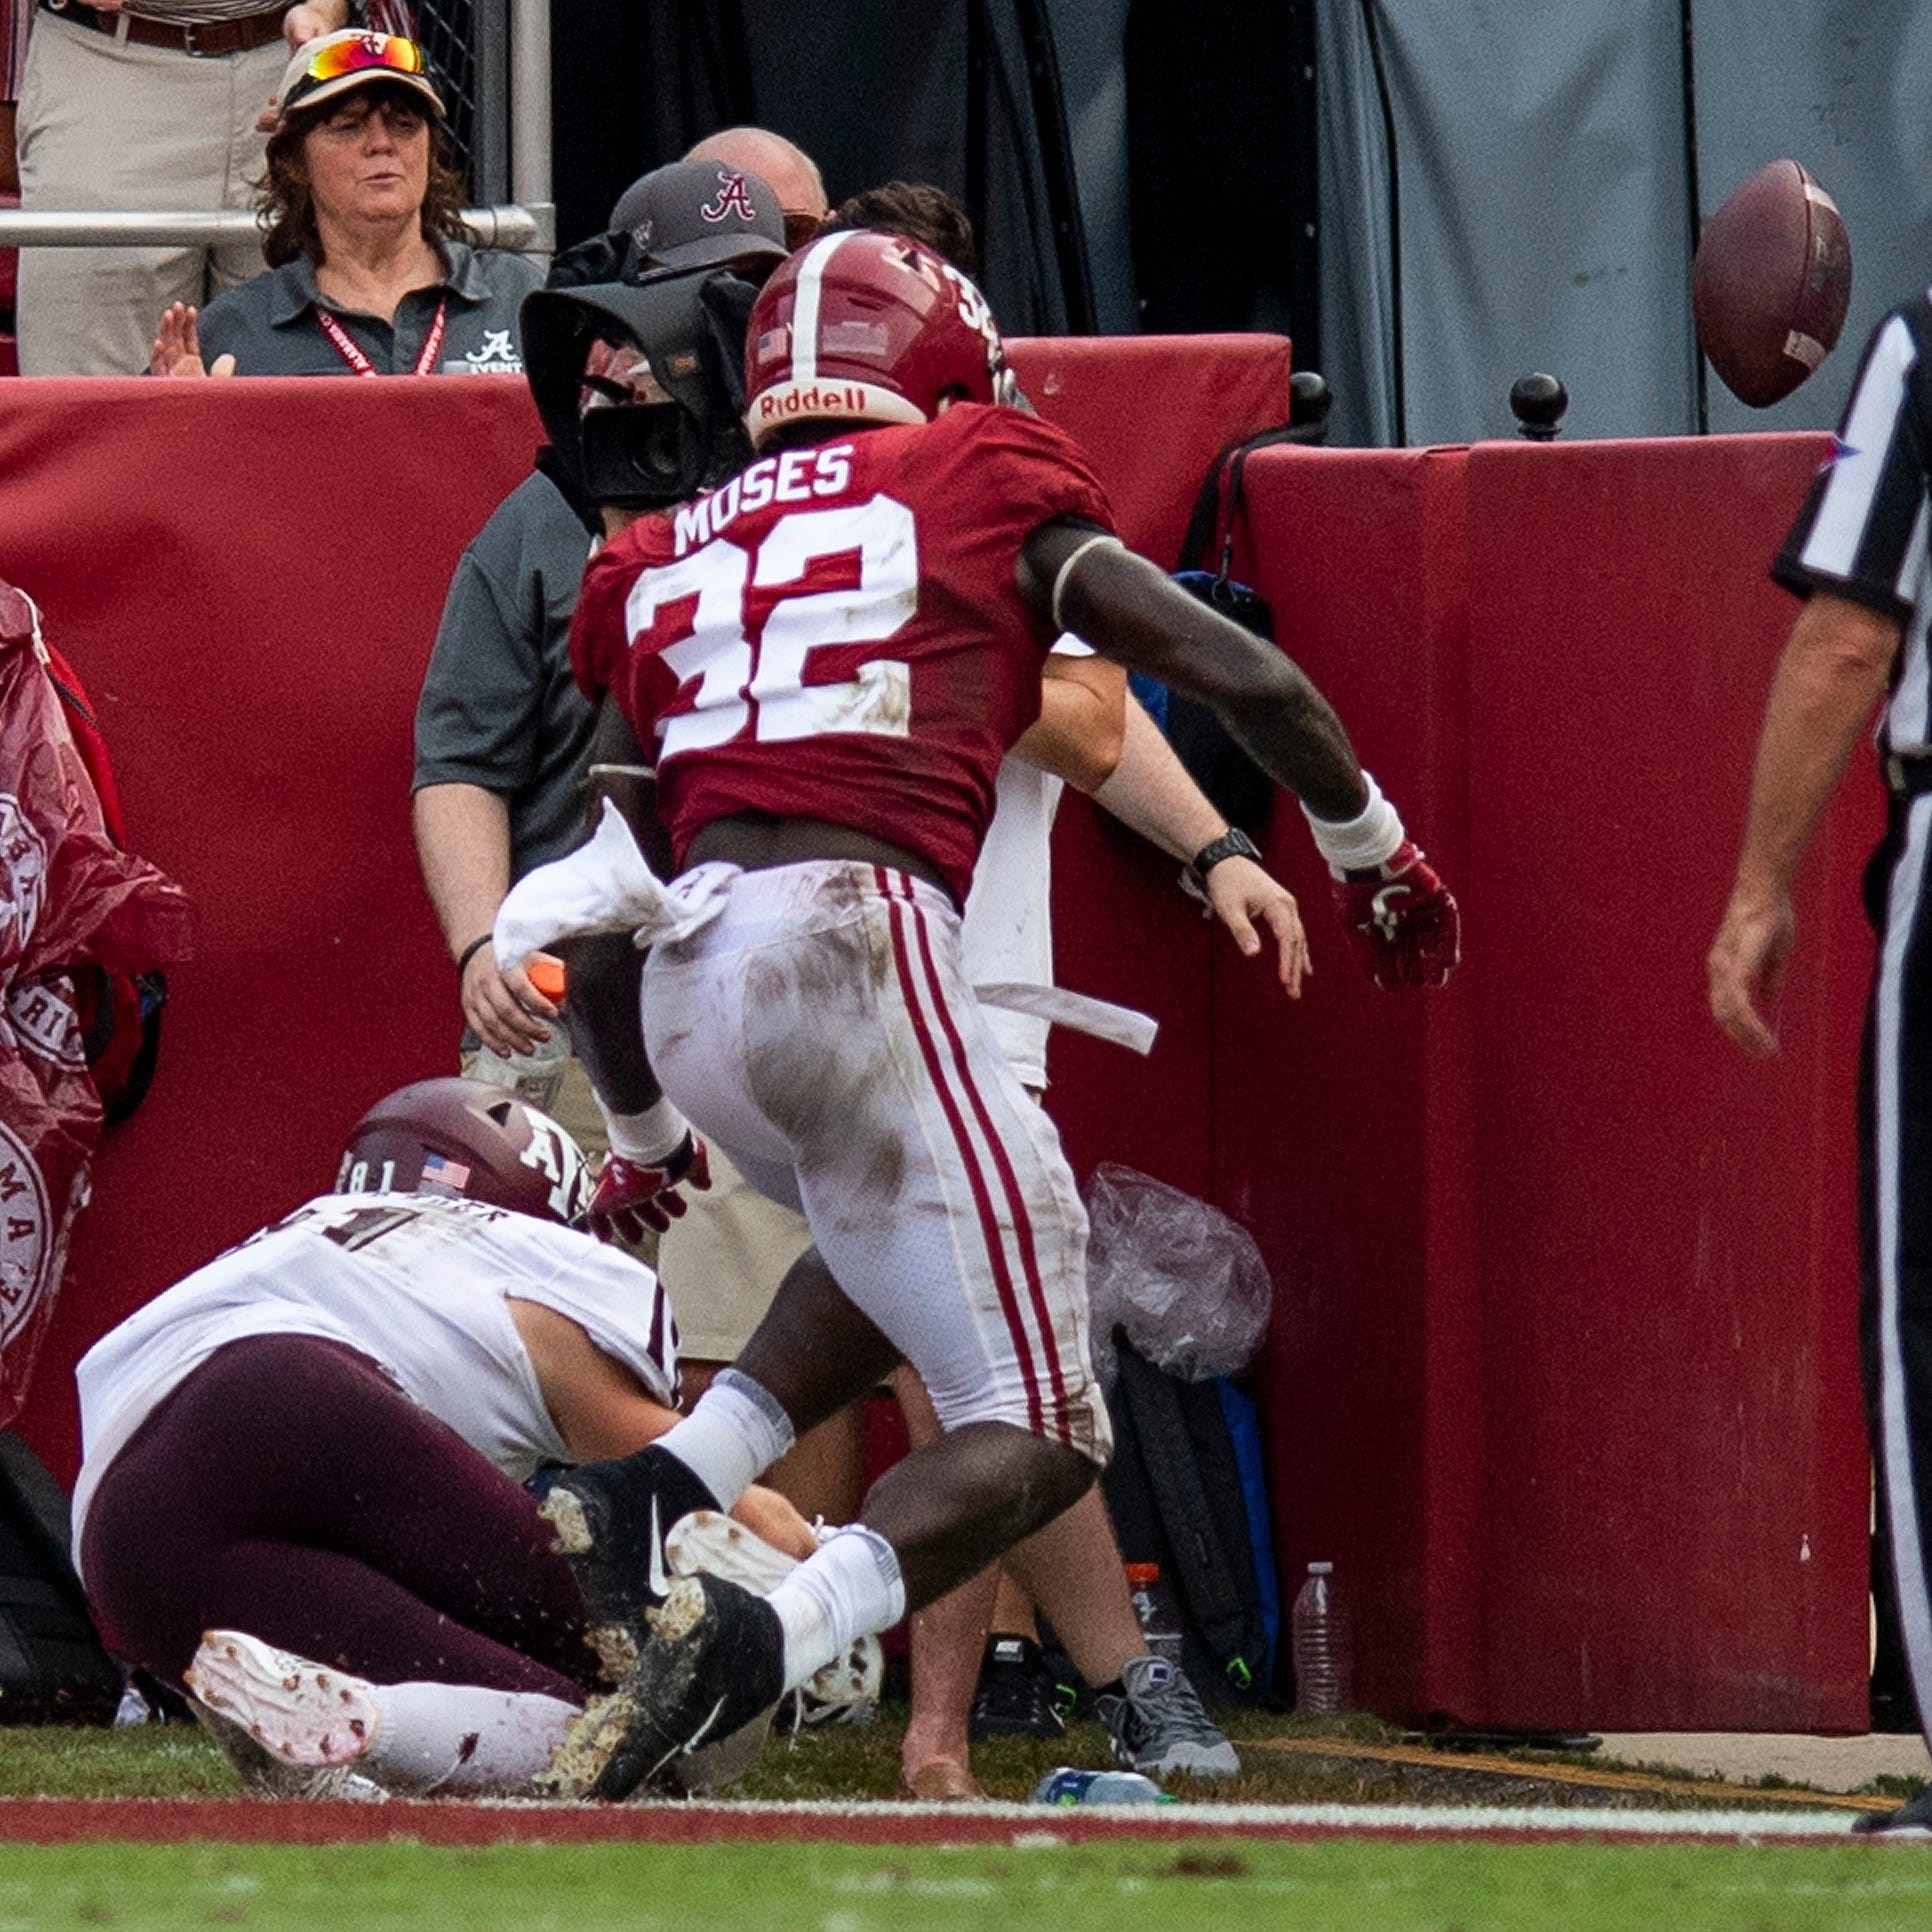 Alabama evaluating wall after LB Moses' collision